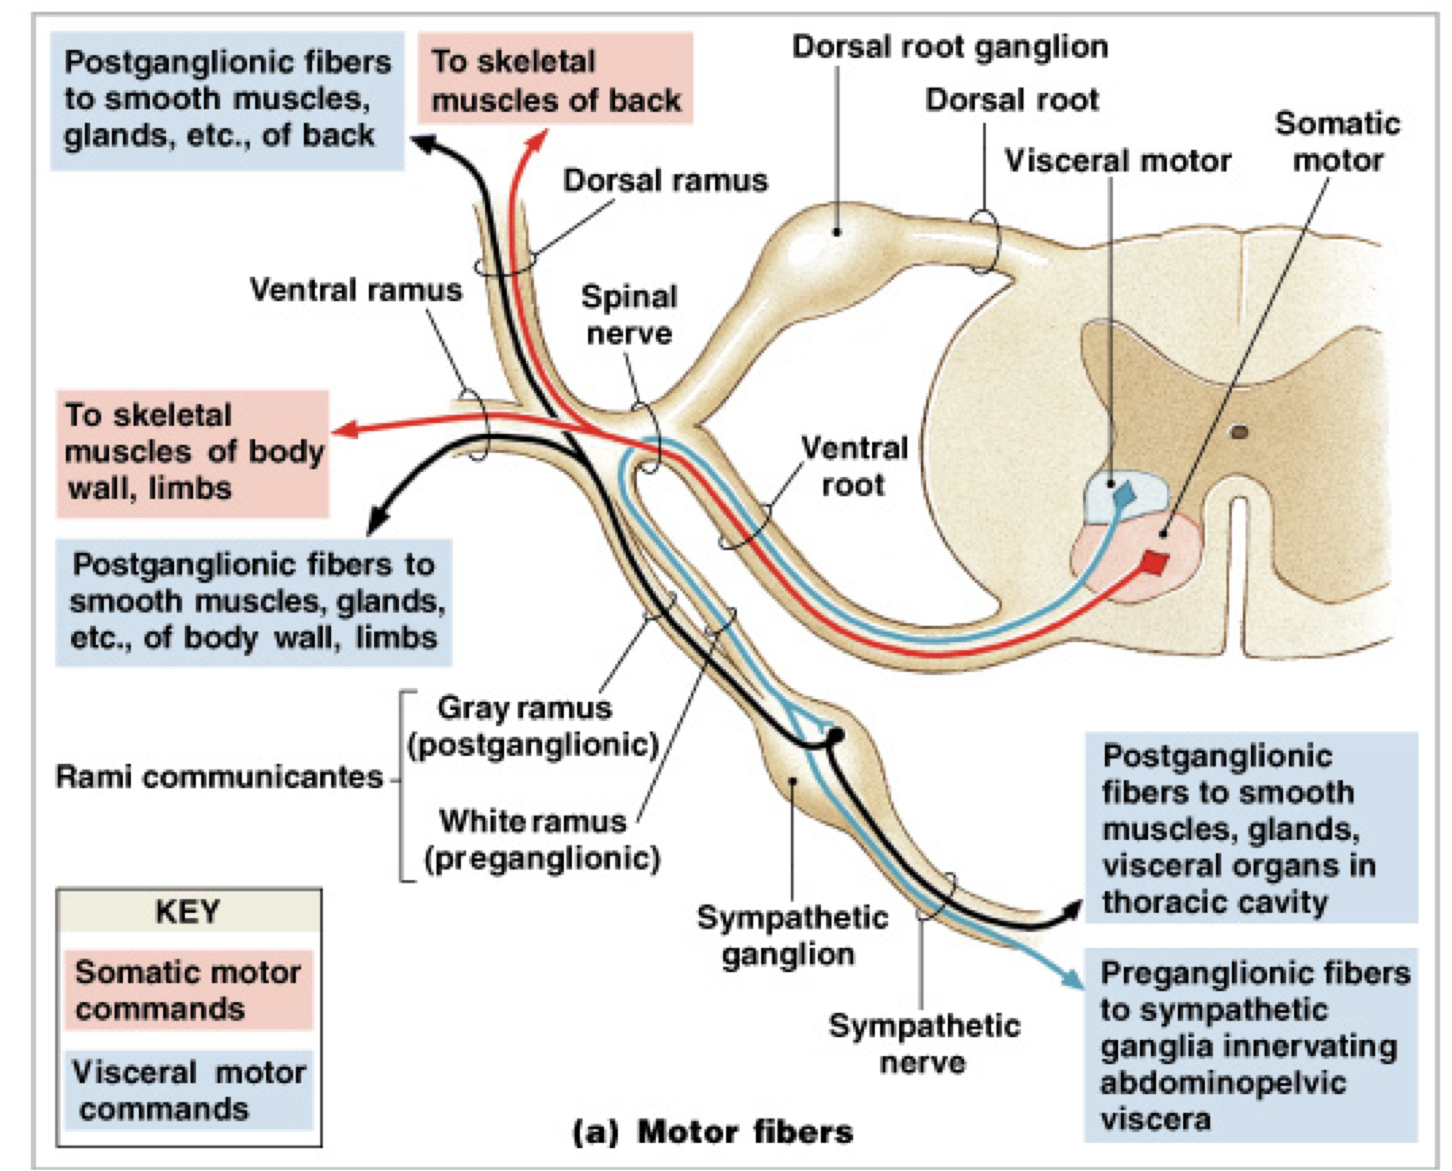 somatic and visceral nerve fiber spinal nerve physiology pathways biology studying [ 1452 x 1171 Pixel ]